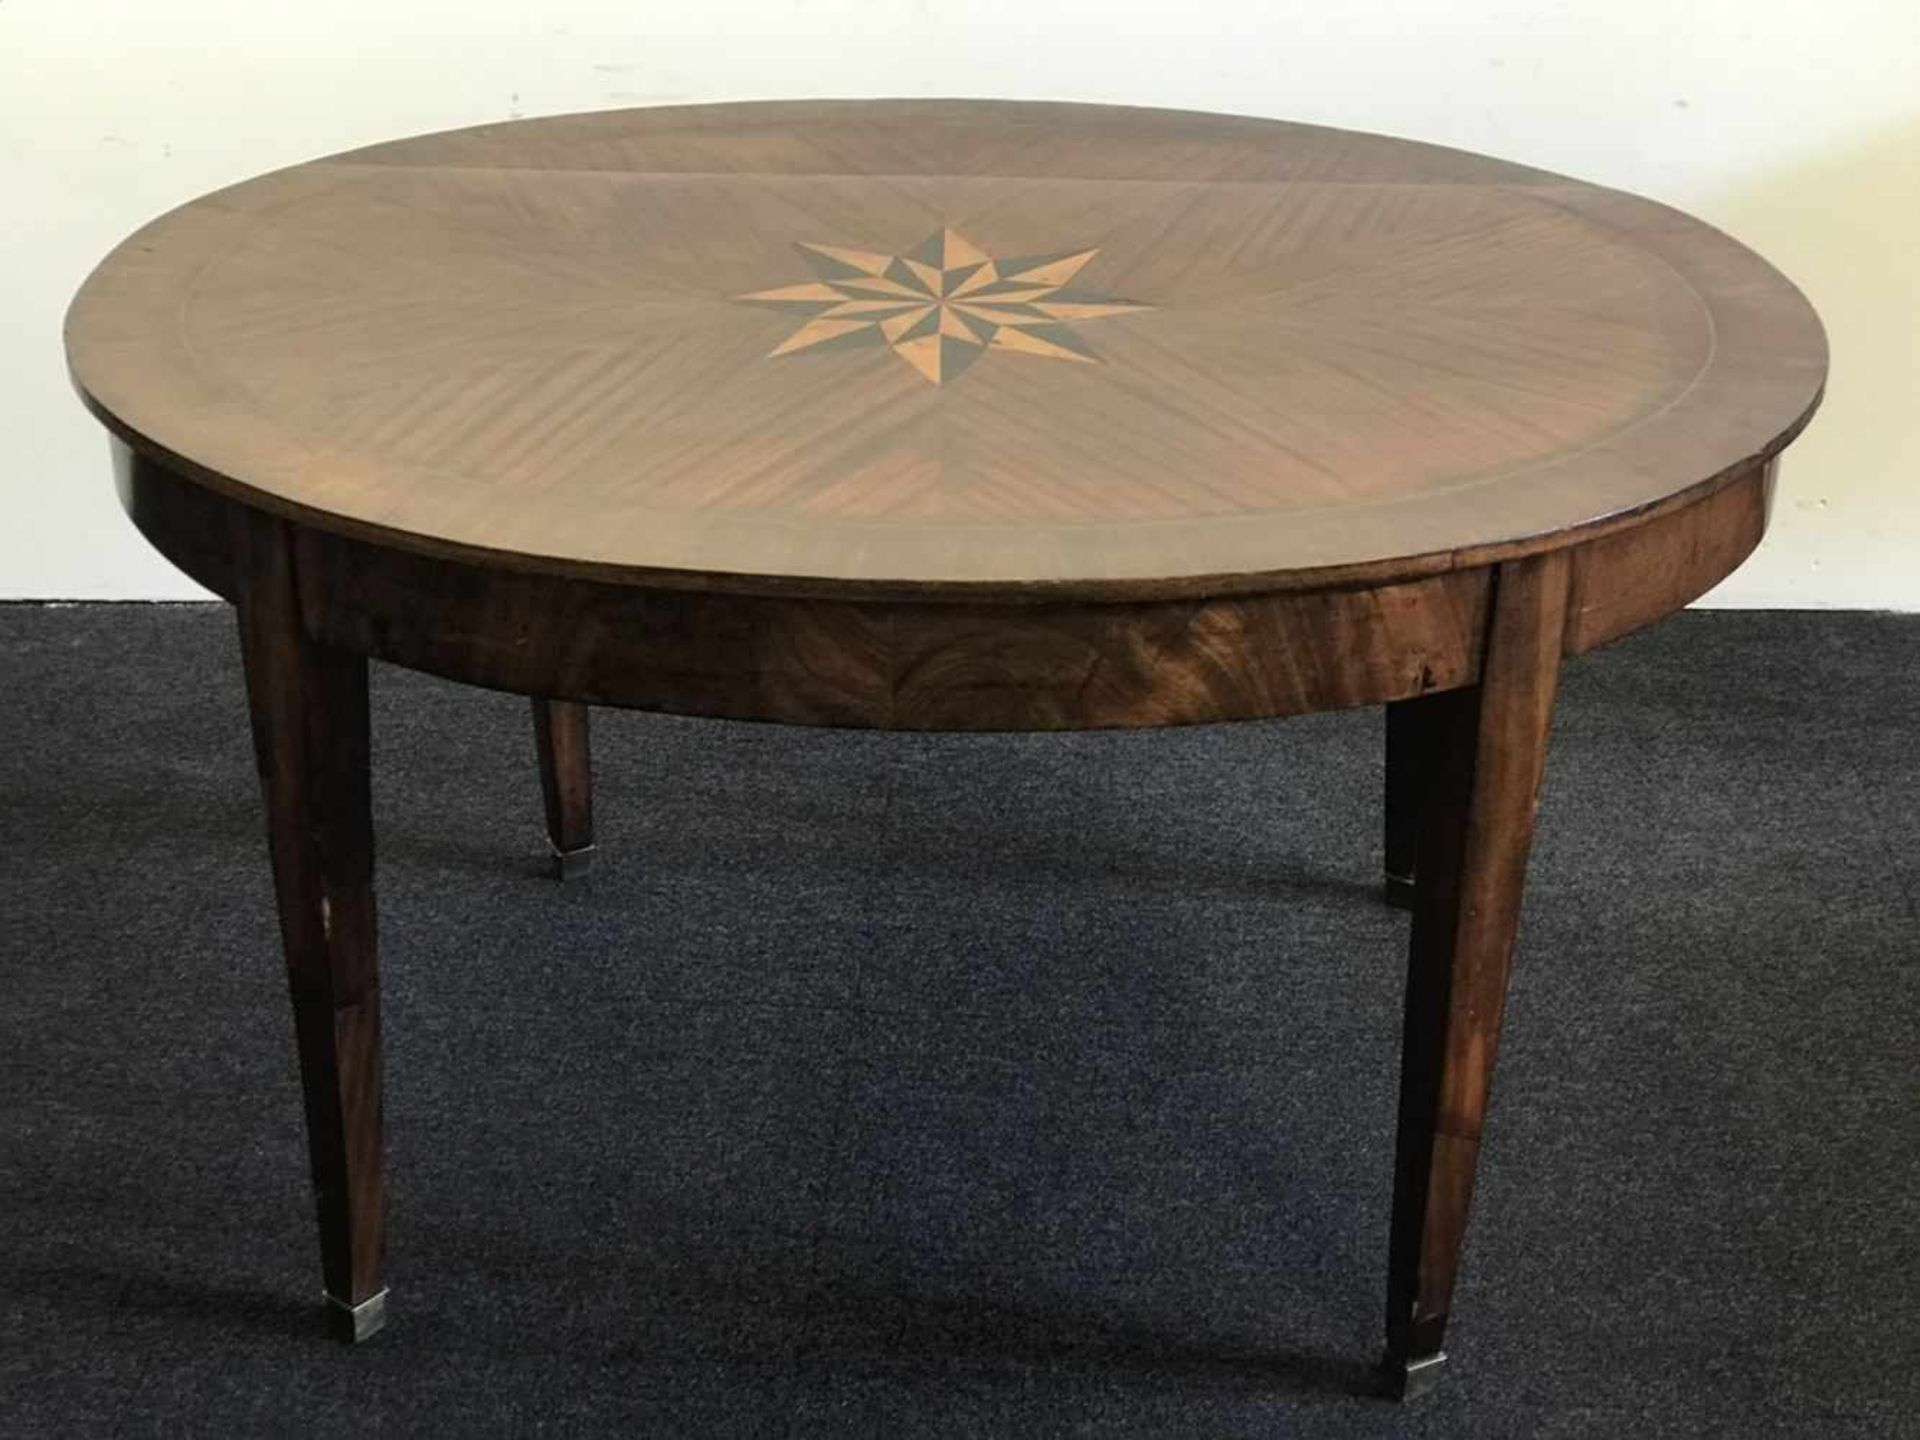 Los 100 - Round table 19th century acajou with marquetry